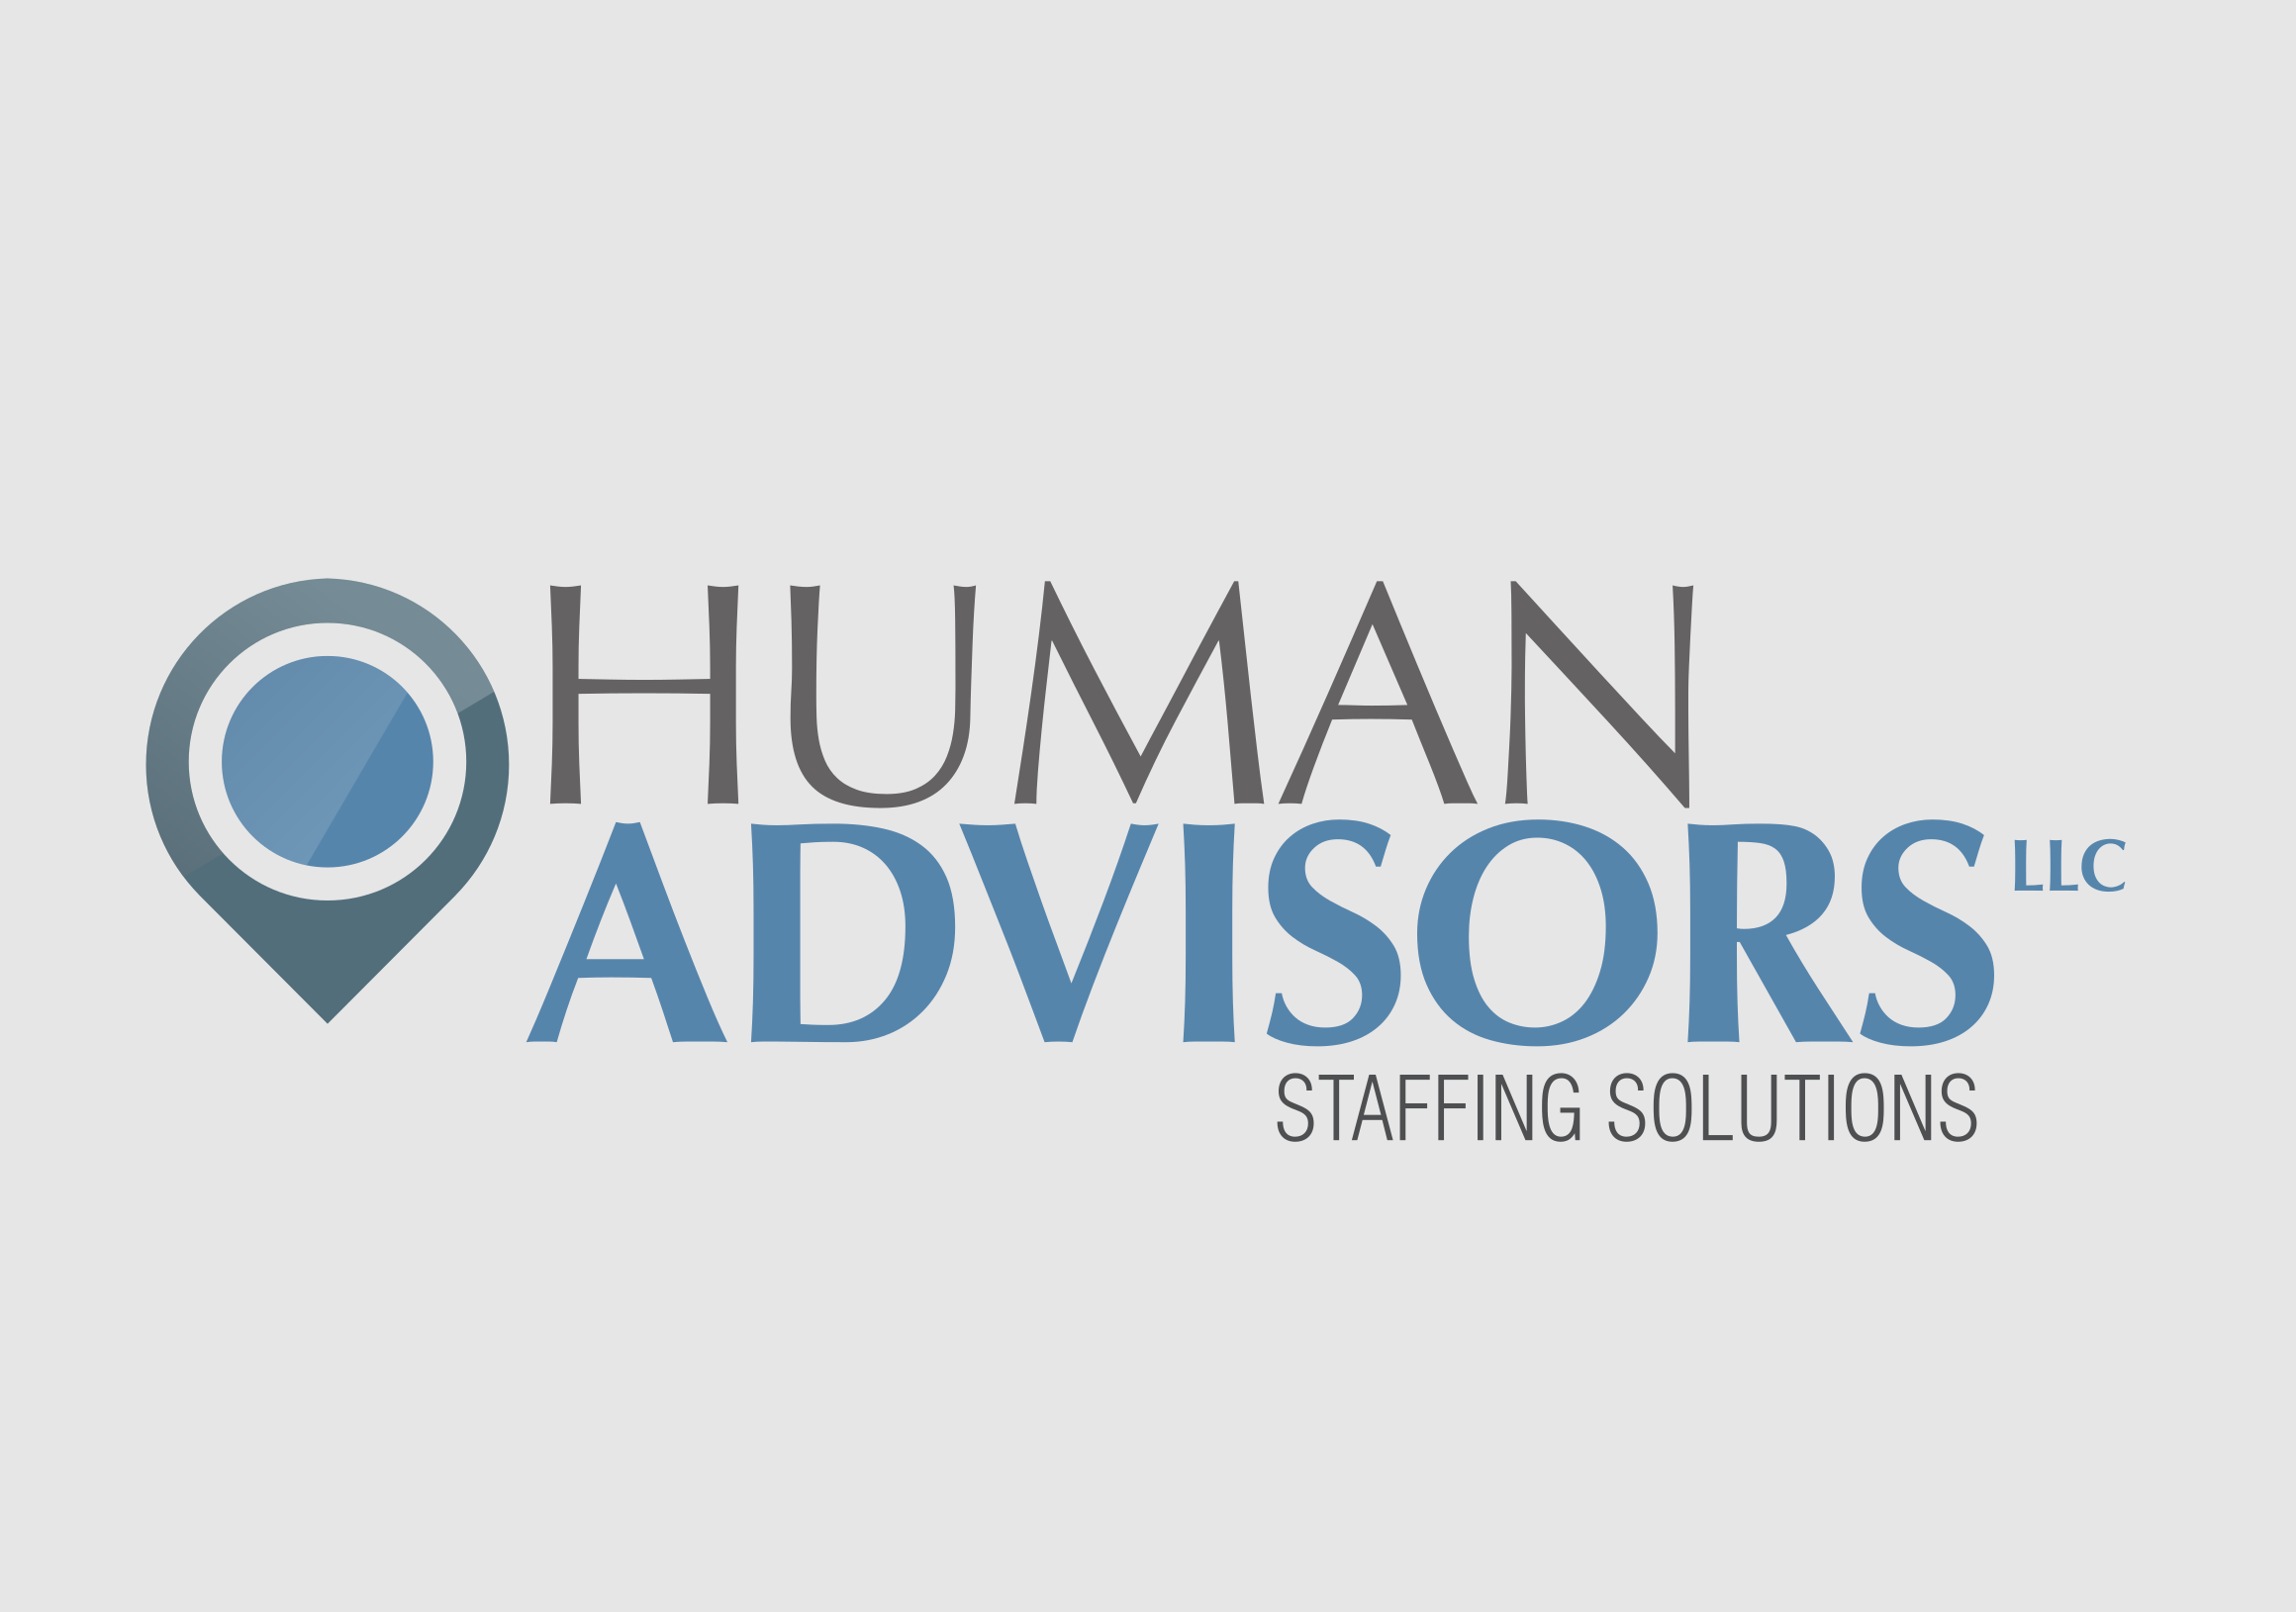 diagram-of-human-advisors-staffing-solutions